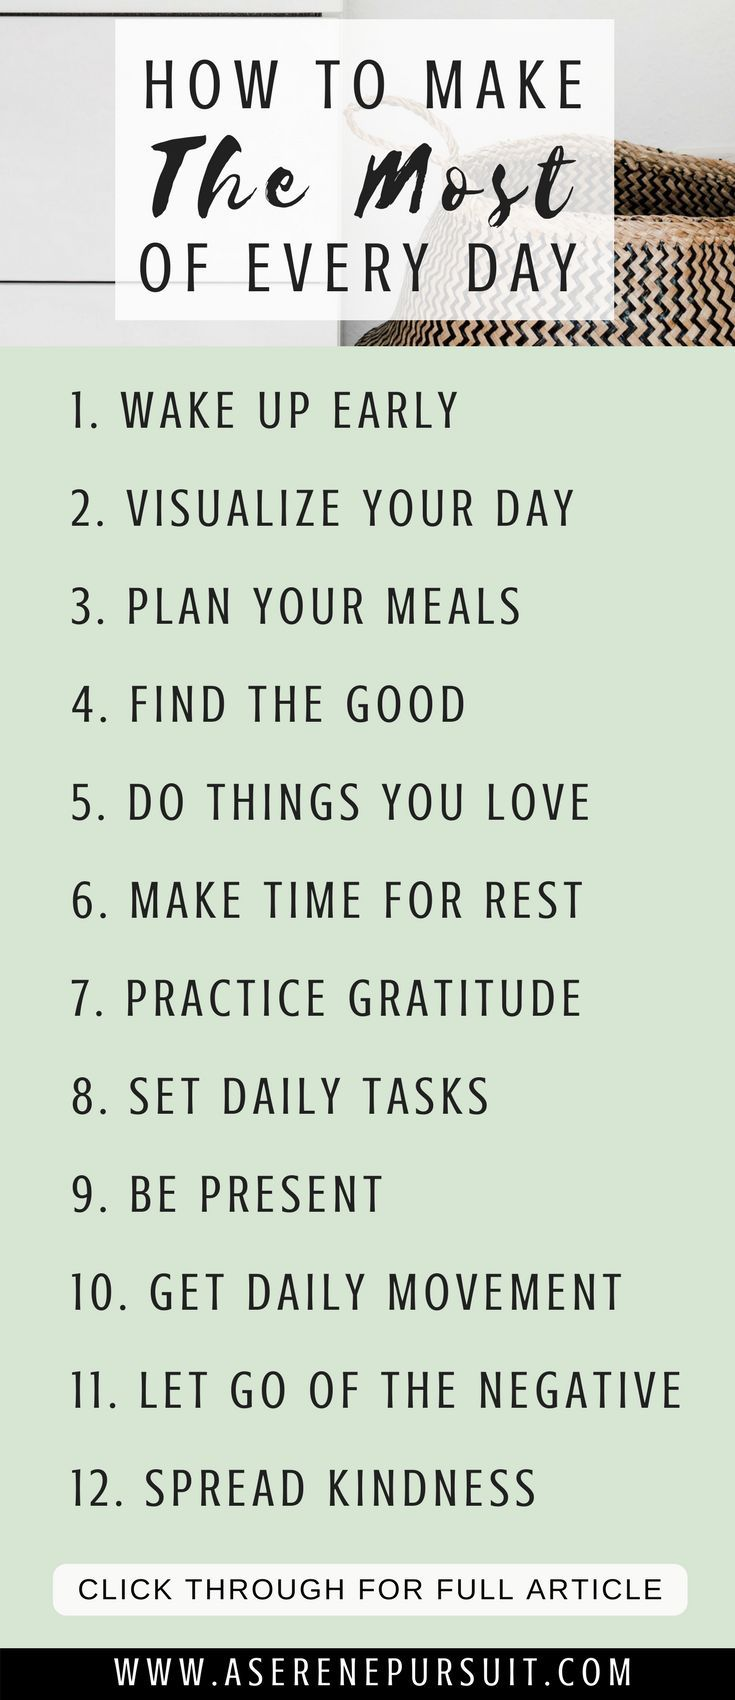 12 Tips on How to Make The Most of Every Day   Are you tired of letting the days simply come and go? Do you want to make this year the best year yet? Start by making the most of today. Click through for simple tips and ideas on how to make the most of life and live out each day with intention.  positive mindset  personal development  growth mindset motivation  change your mindset   happy thoughts   happy life   perspective inspiration   #selfimprovement #positivethinking